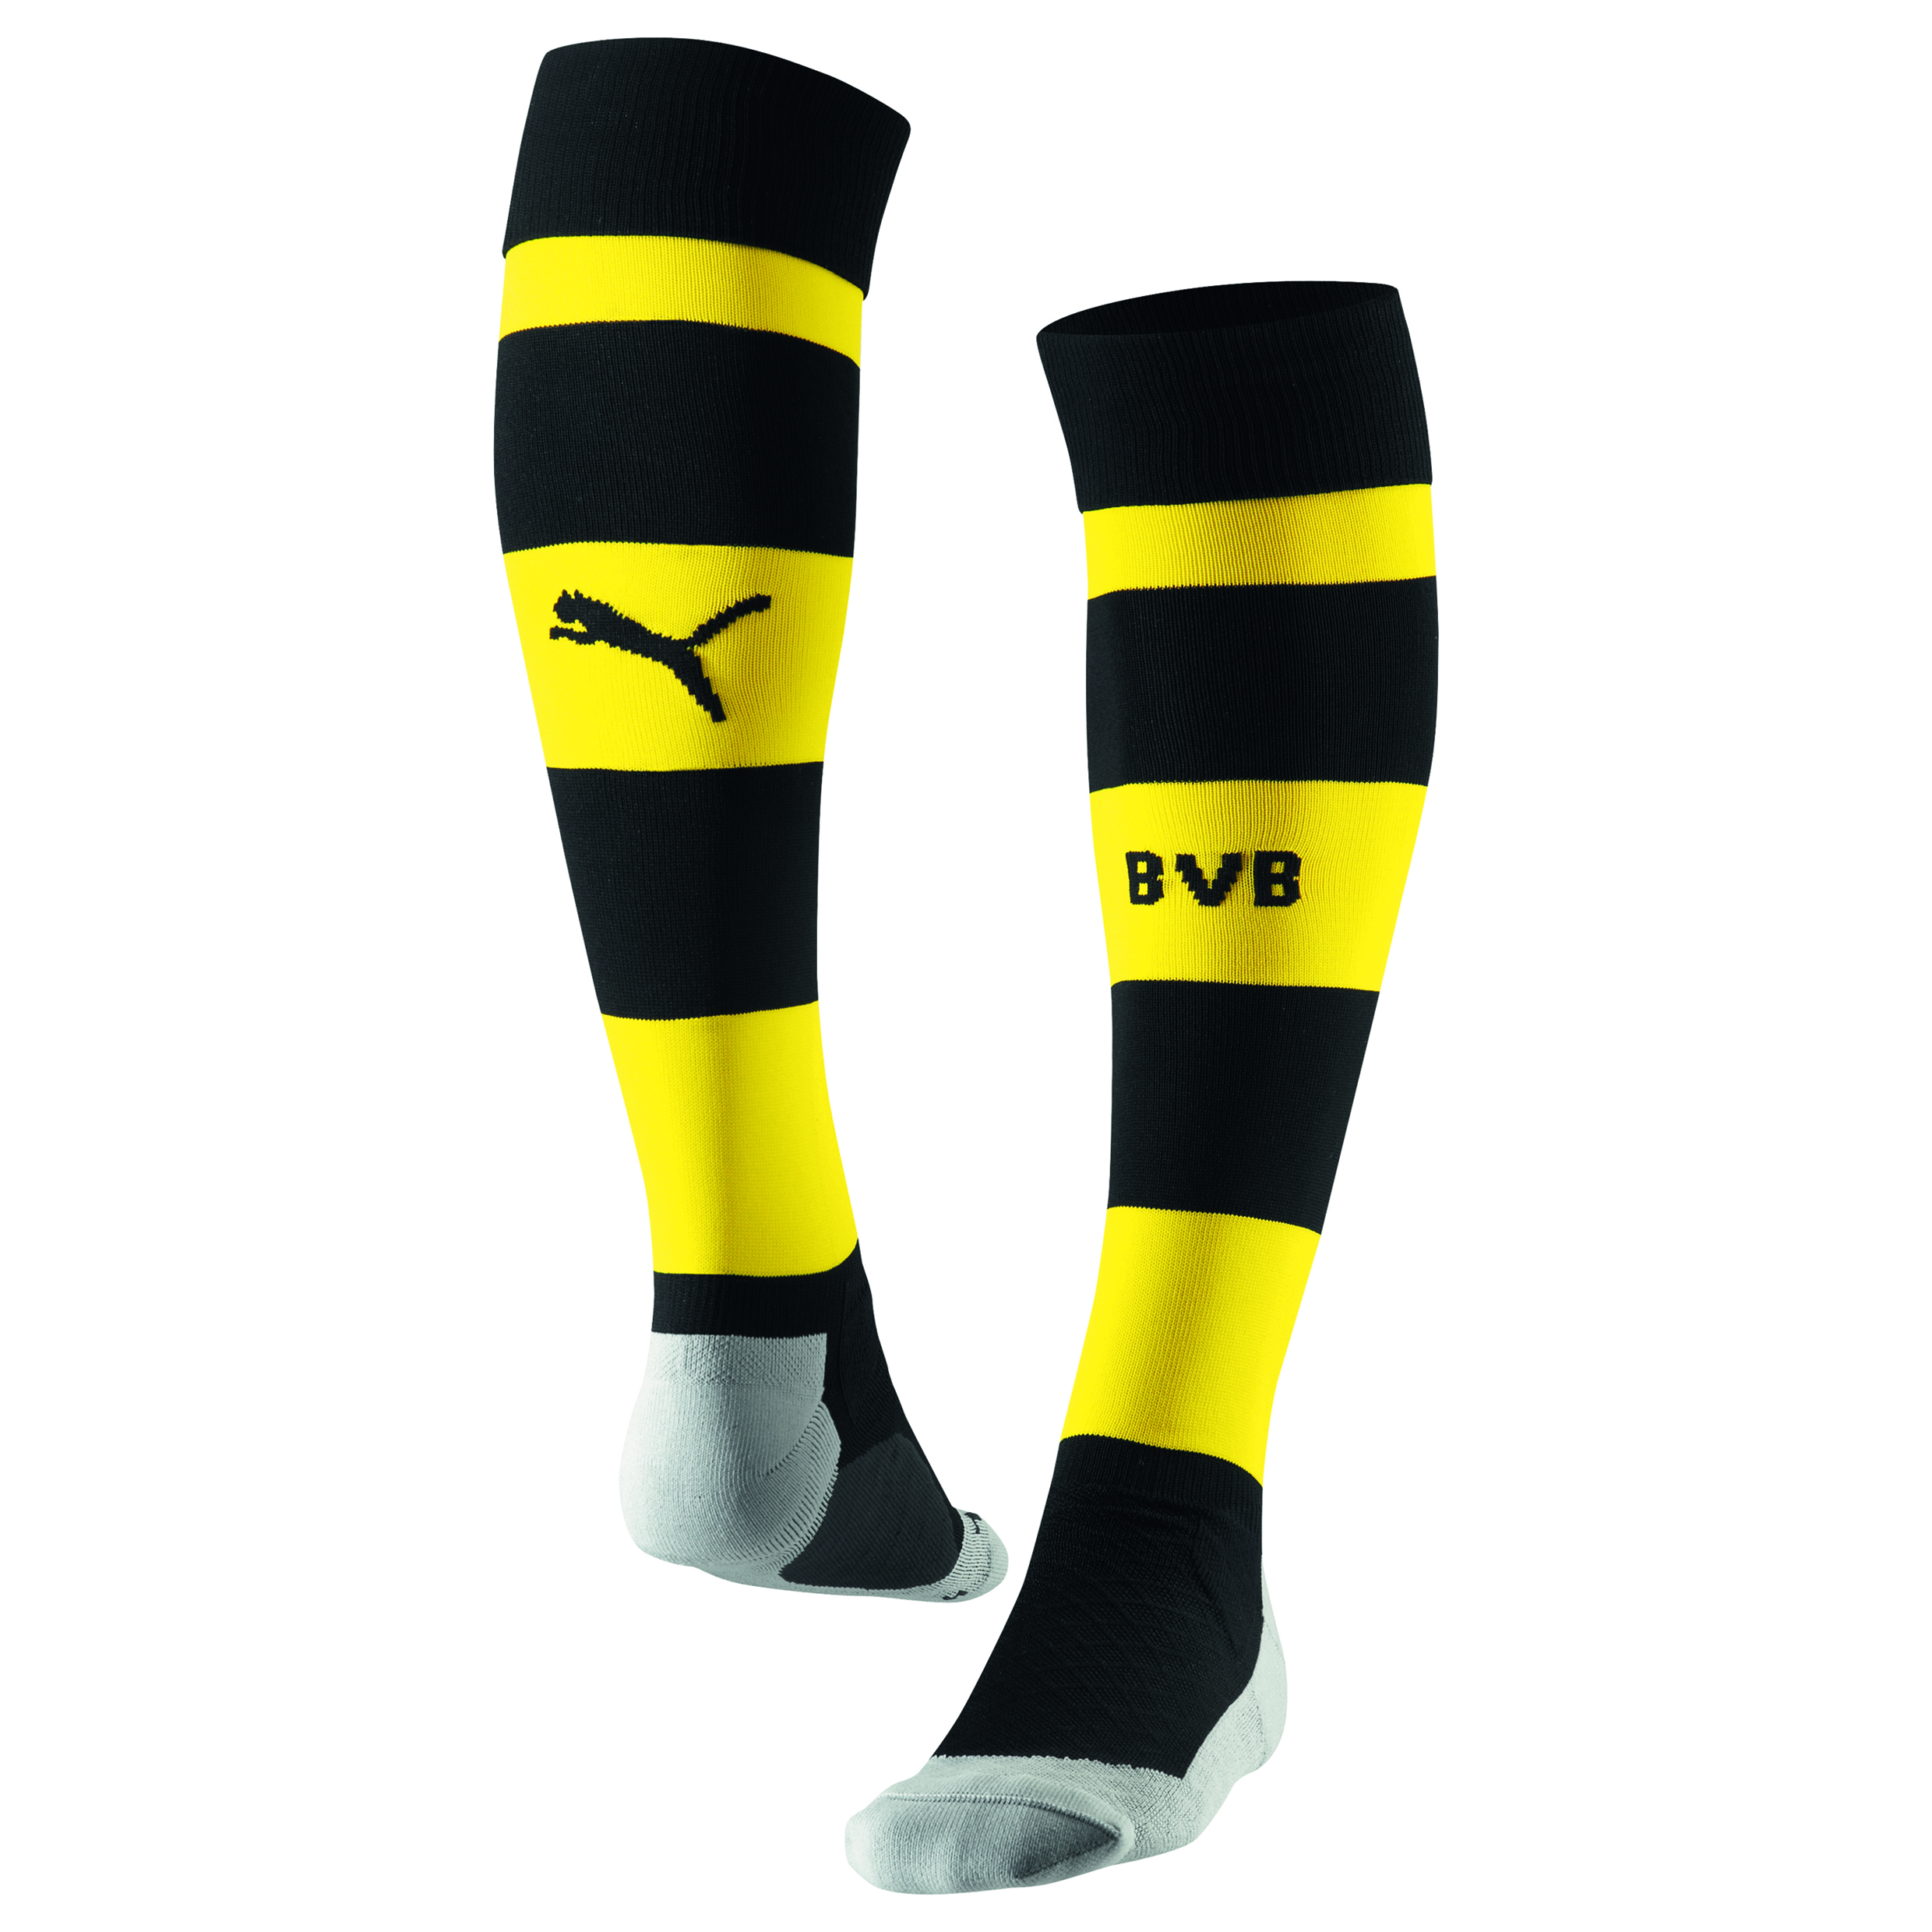 BVB Home Socks 2014/15